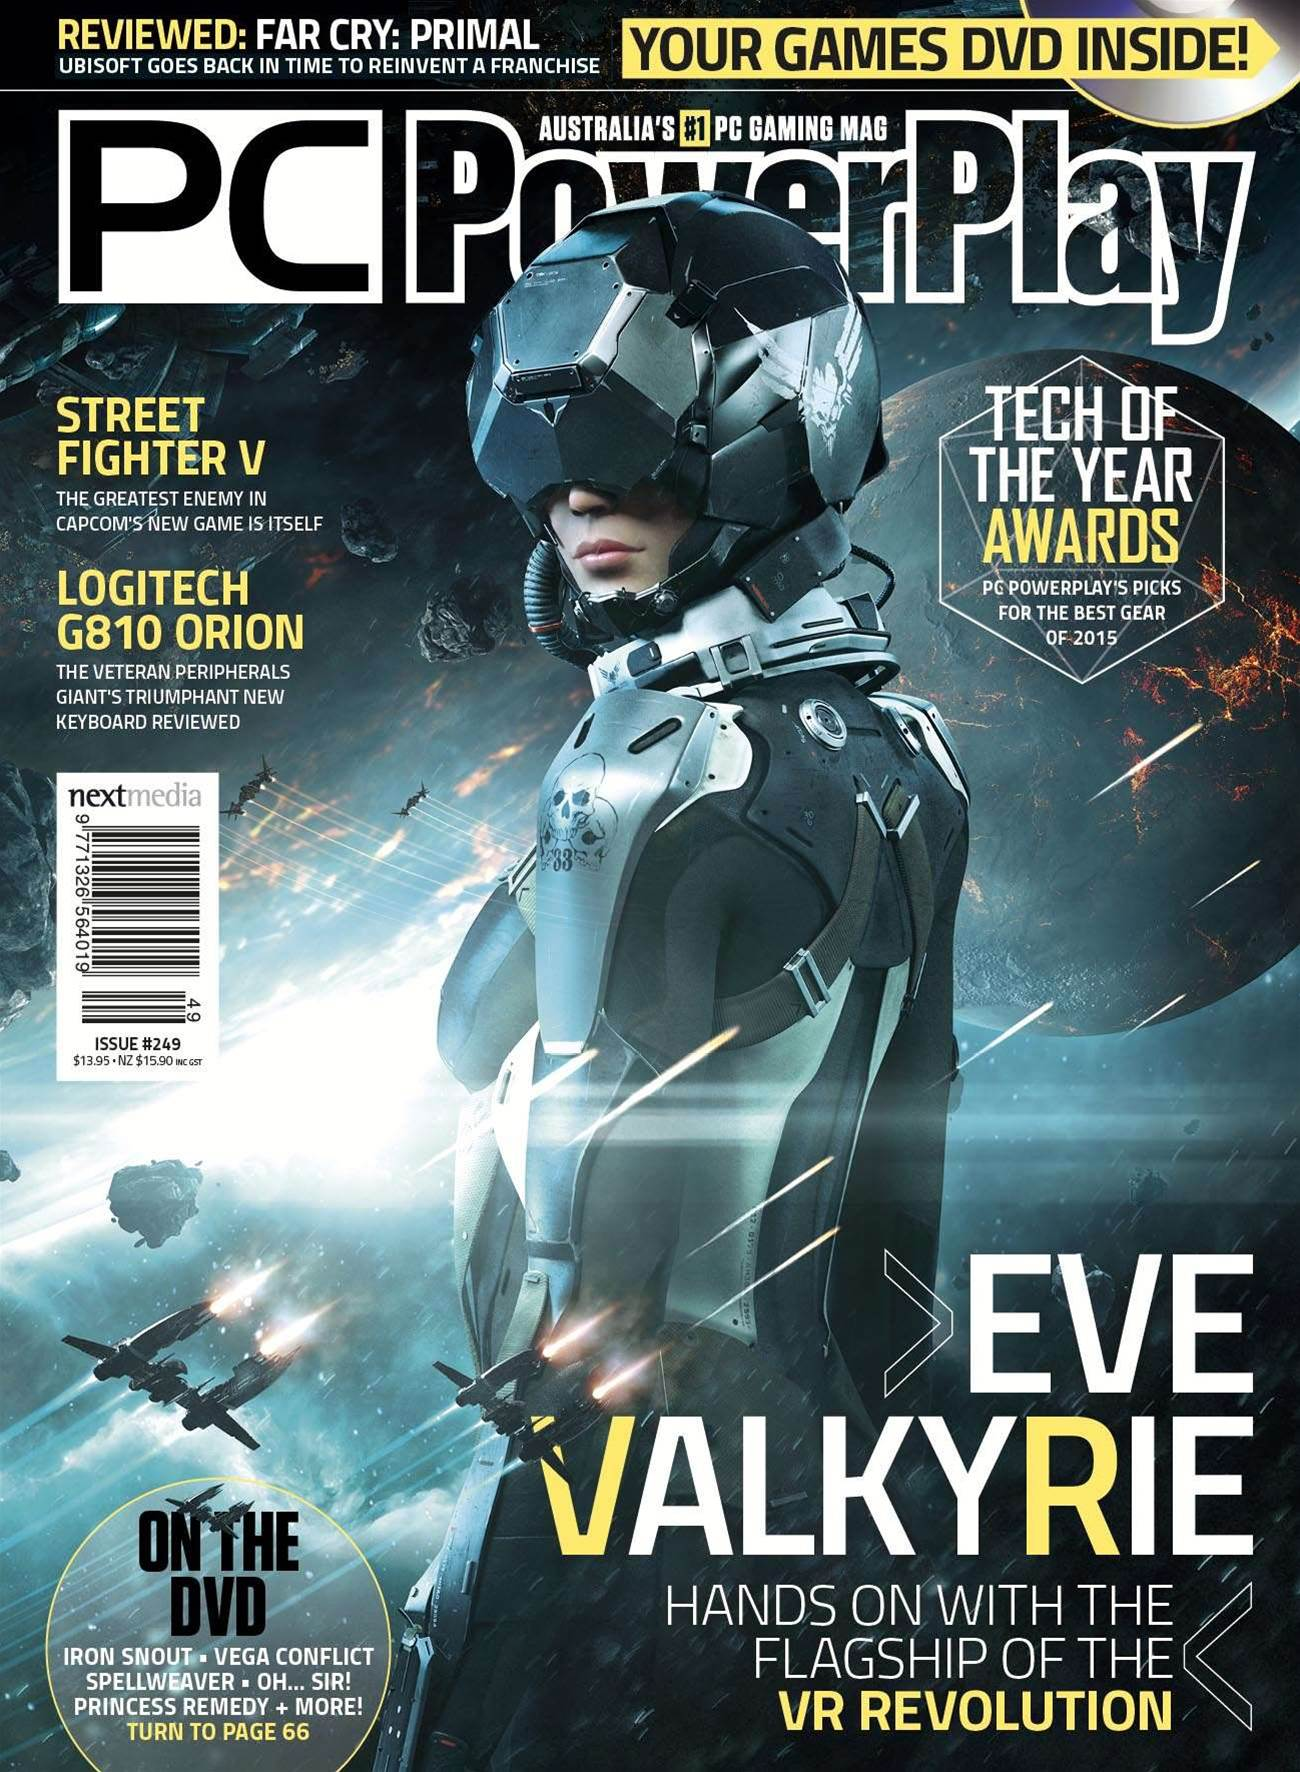 PC PowerPlay Issue #249 Out Now!